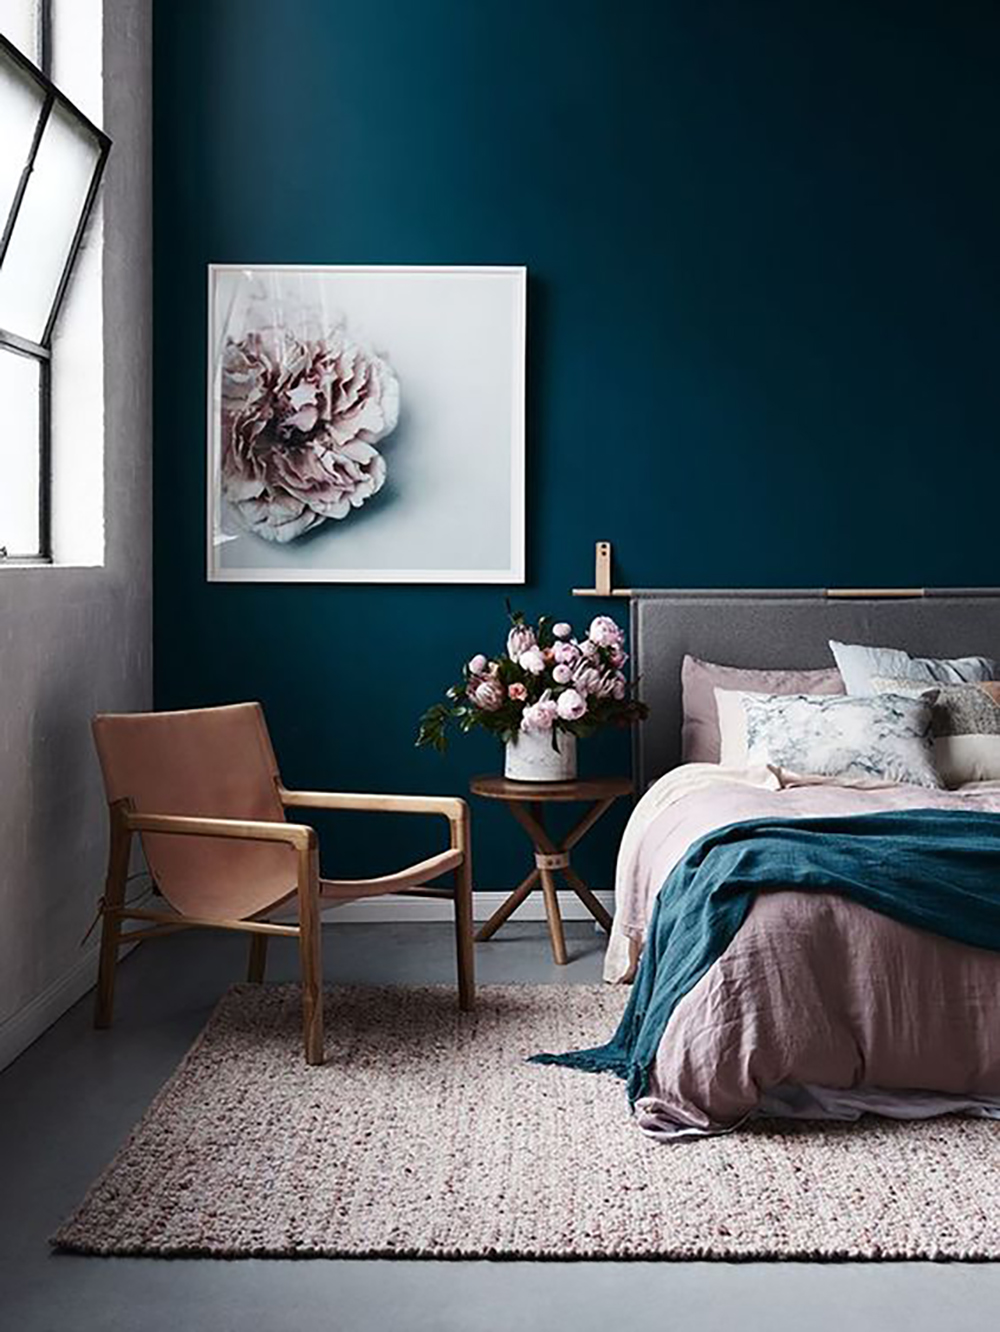 35 ideas for blue wall colour in home decoration - Aliz\'s Wonderland